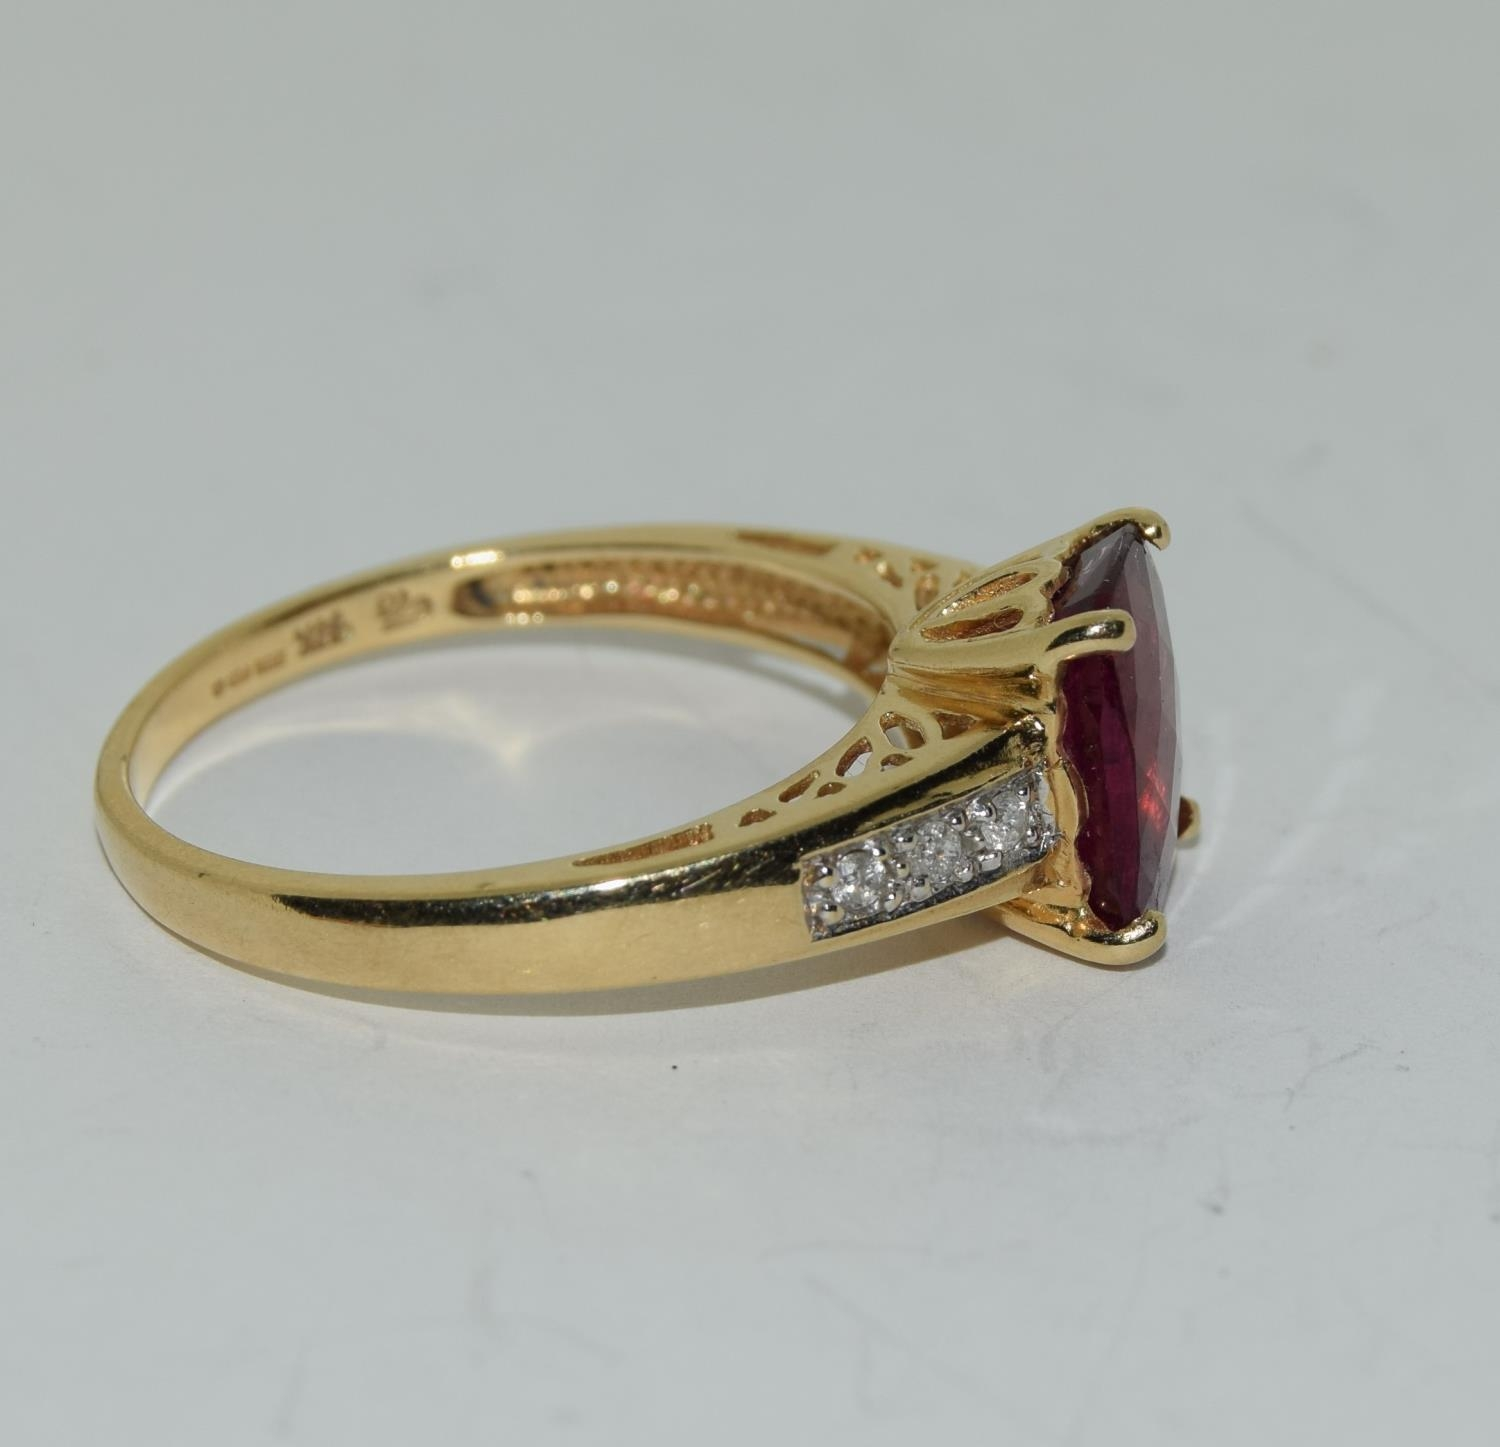 14ct gold ladies ruby and diamond ring ,ruby approx 3ct daimonds to the shoulders size T - Image 2 of 6